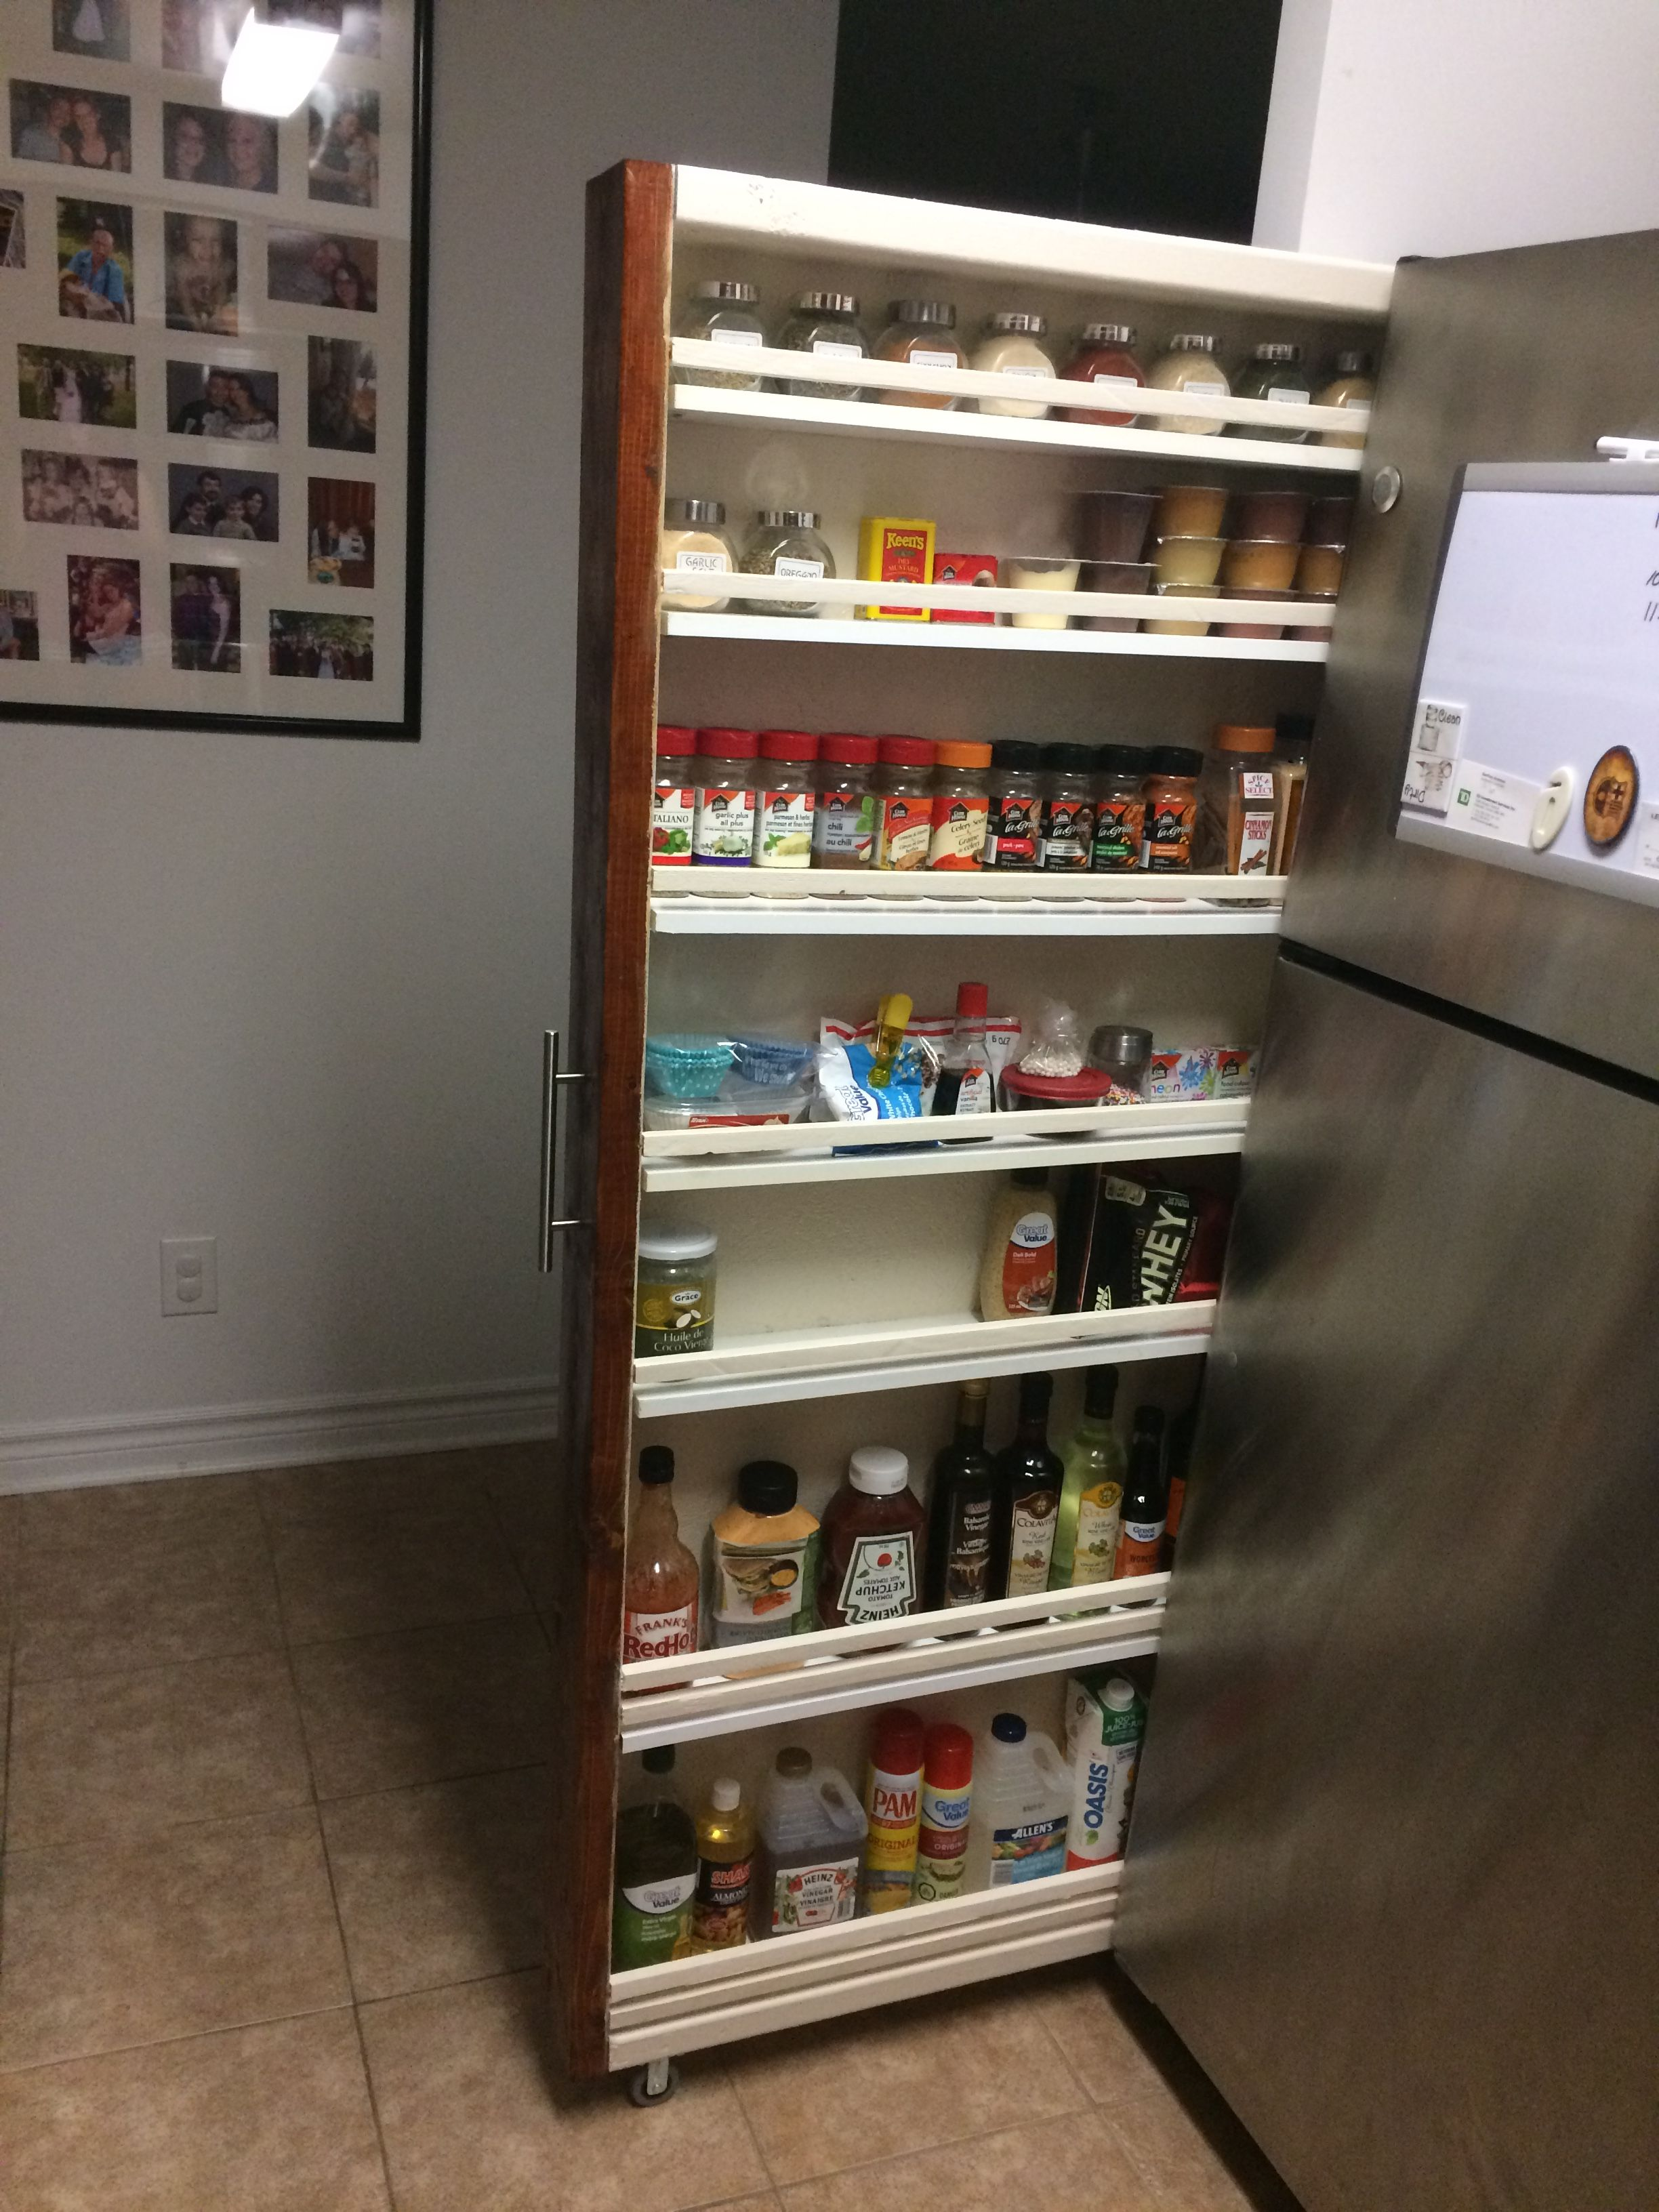 Build A Space Saving Roll Out Pantry That Fits Between The Fridge And The Wall Space Saving Kitchen Kitchen Tools Design Pantry Design